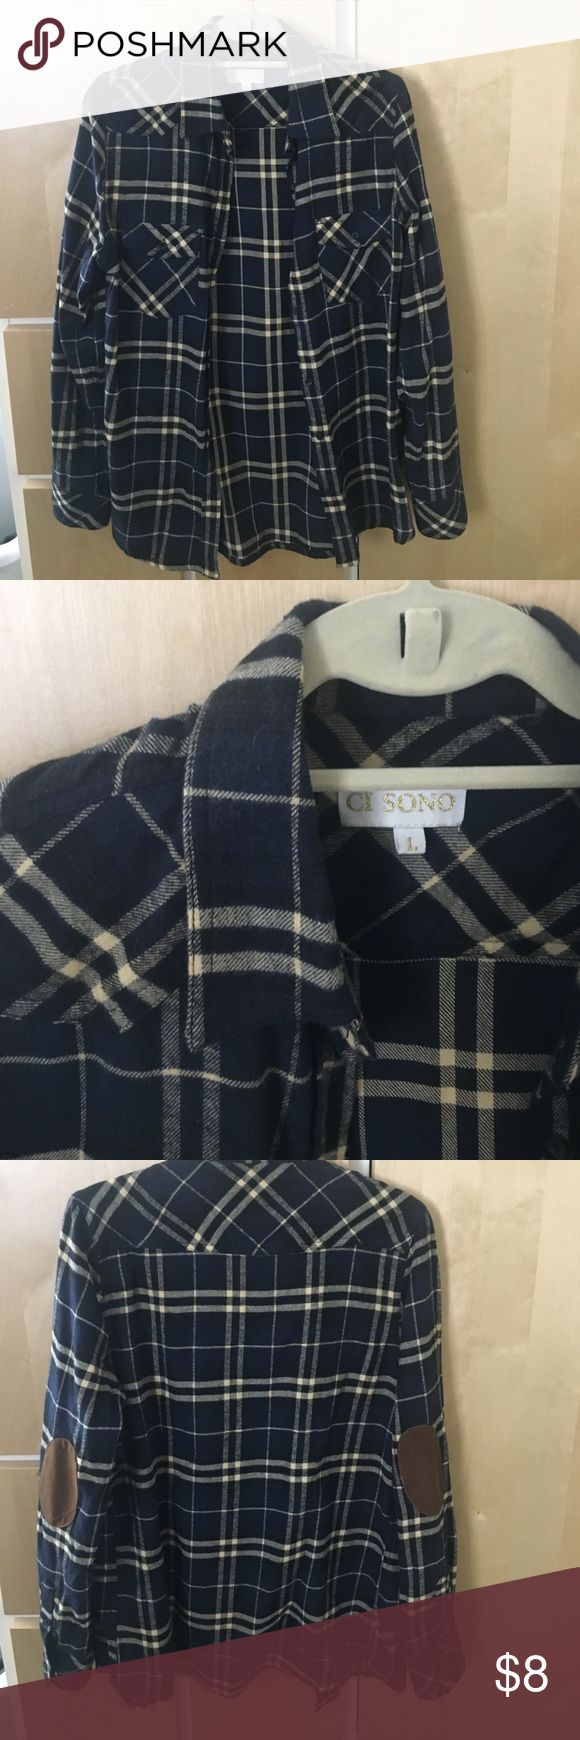 17 best ideas about oversized flannel on pinterest for Super soft flannel shirts